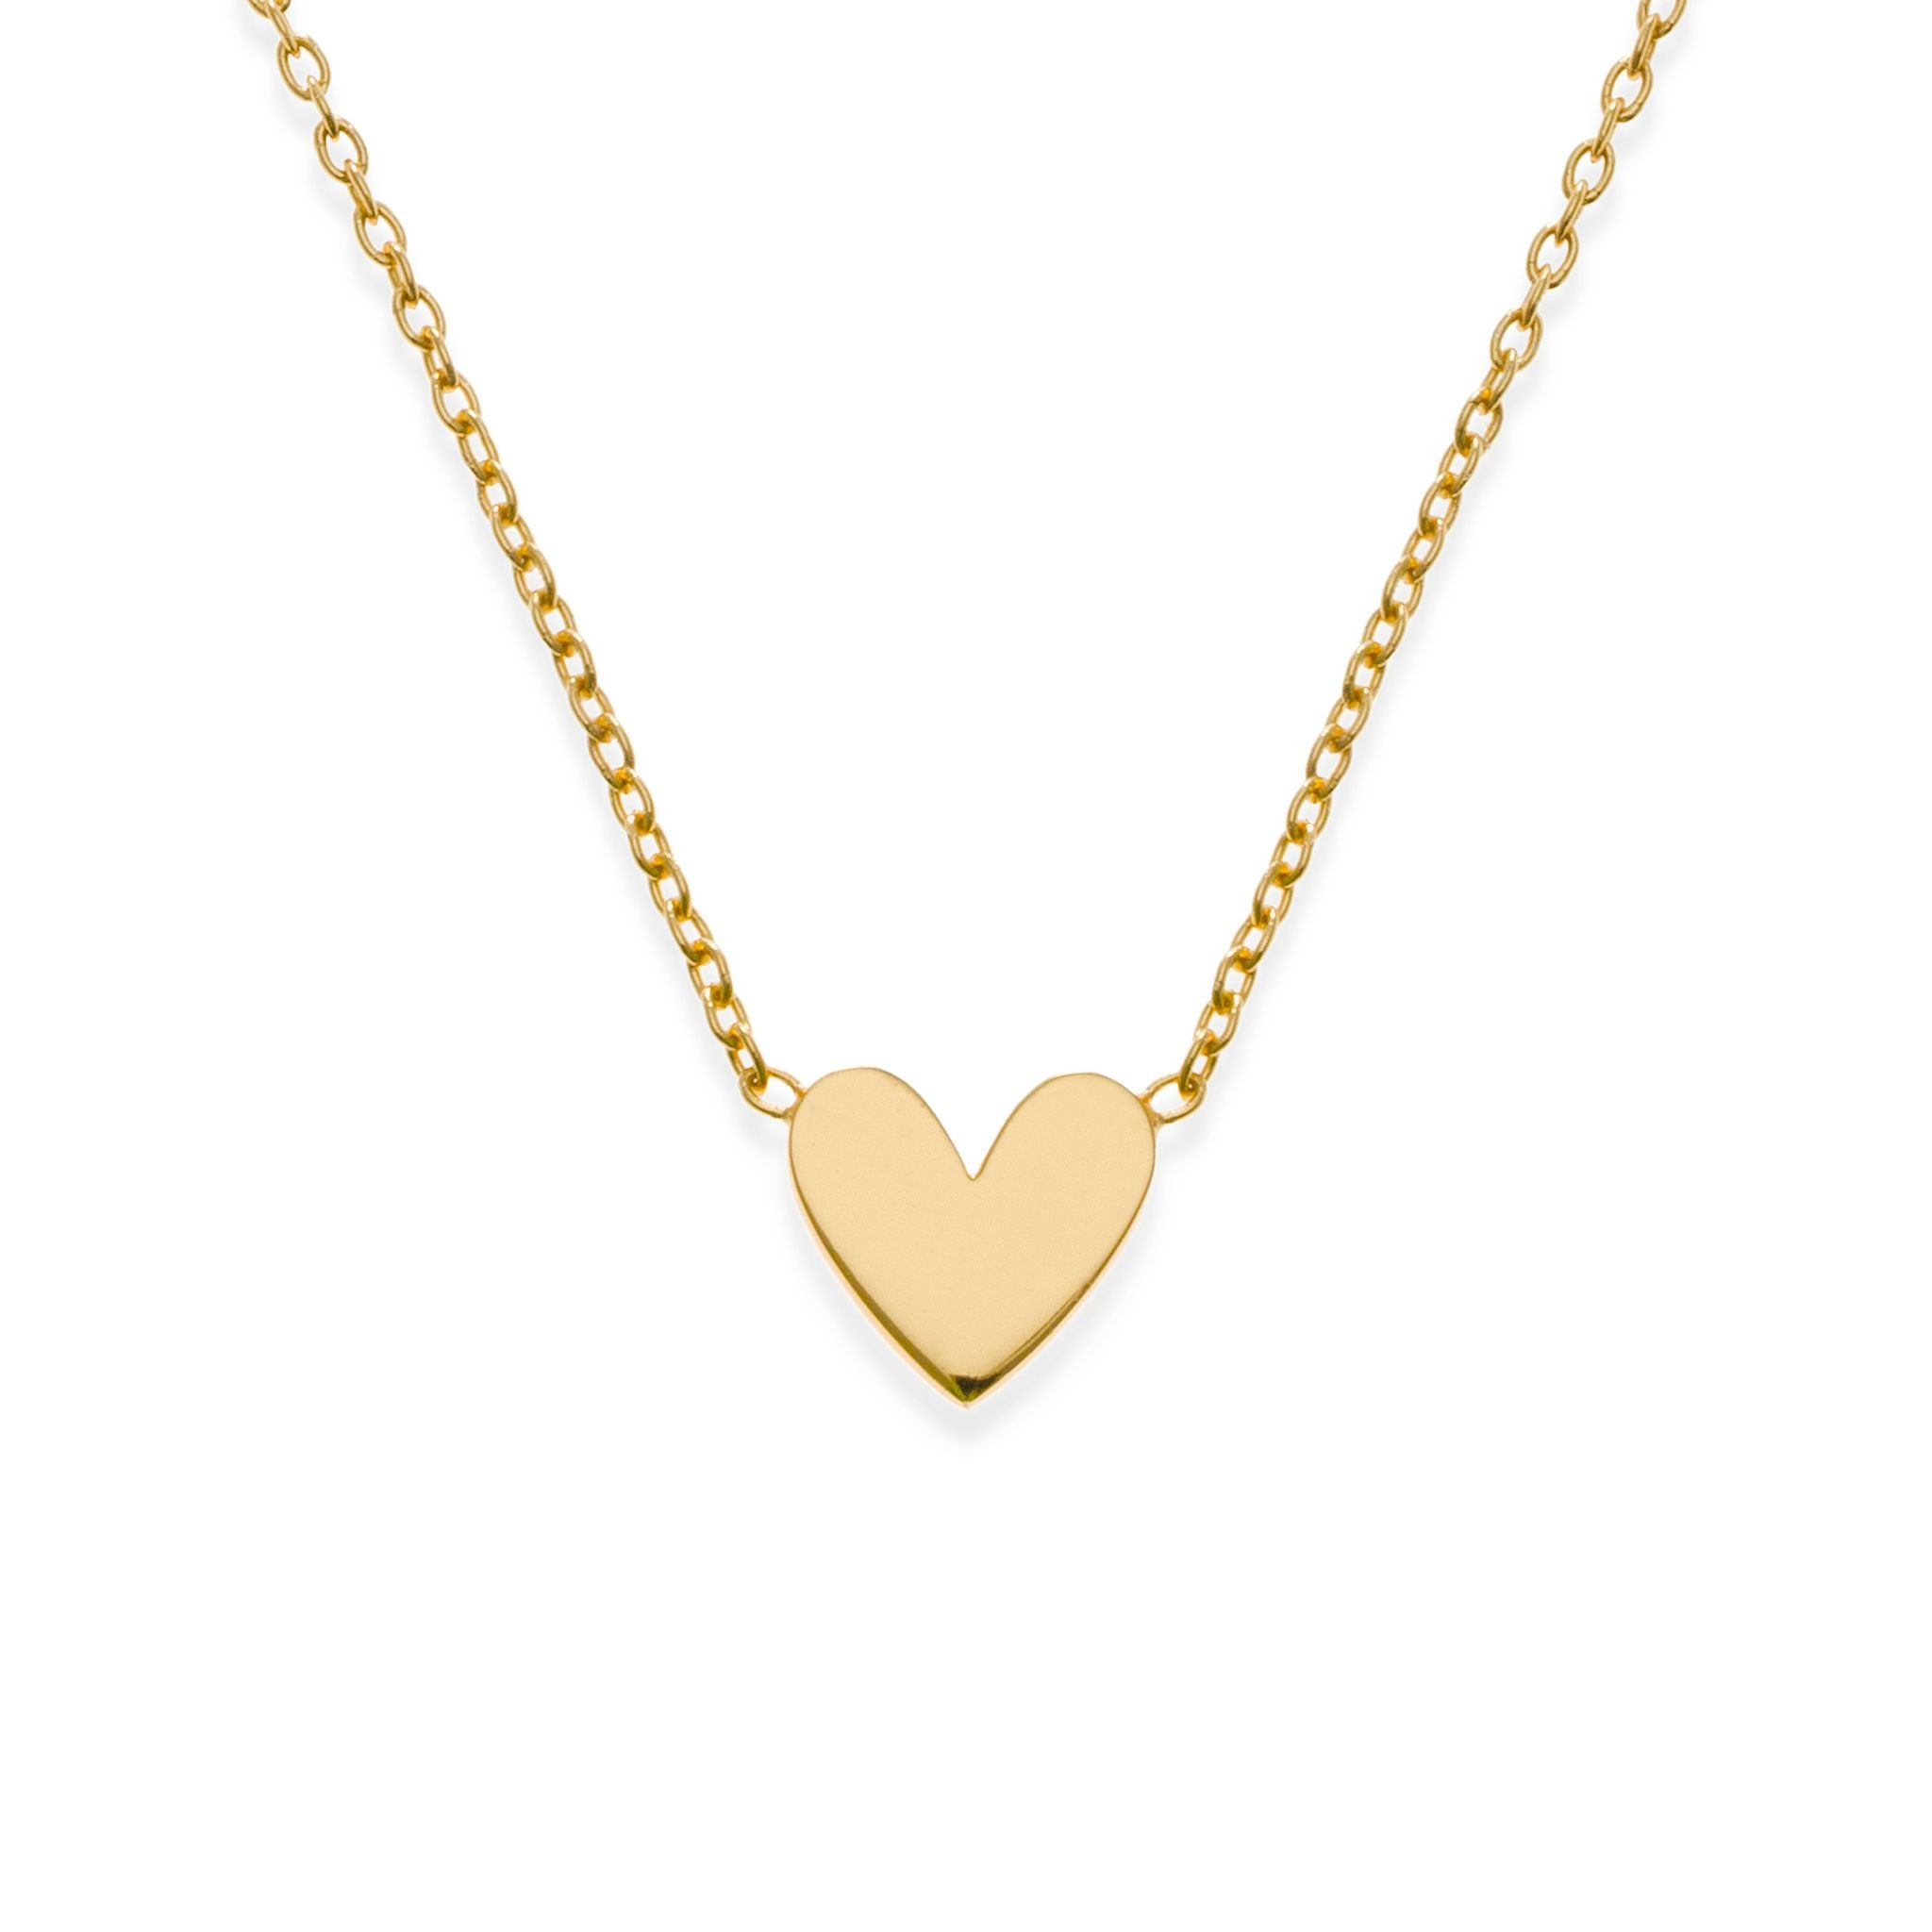 heart infinity pdp online rsp sabo lewis main mini gold thomas necklace soul johnlewis glam john buythomas at rose